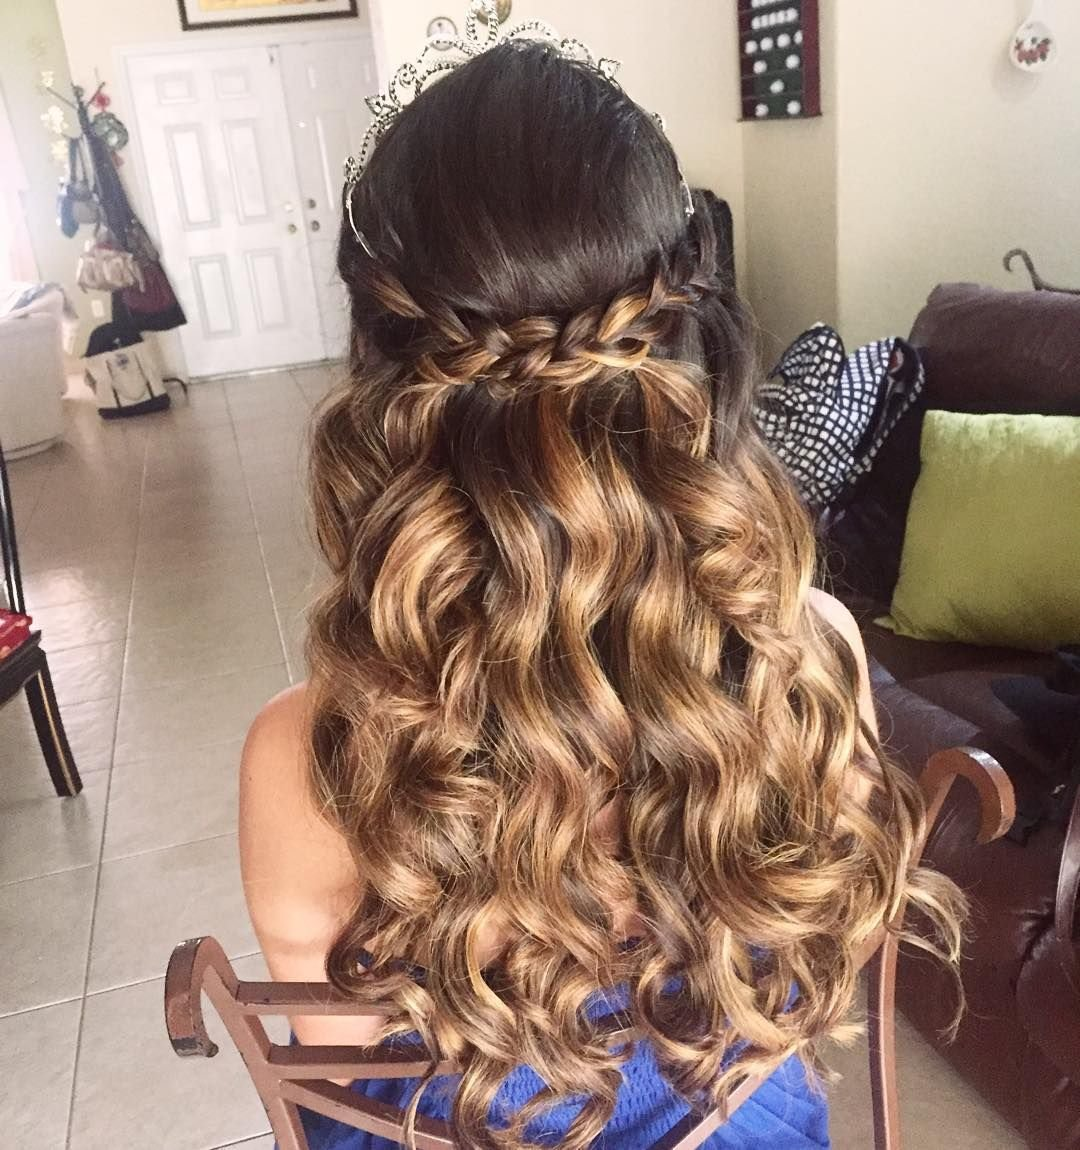 Free 20 Absolutely Stunning Quinceanera Hairstyles With Crown Wallpaper